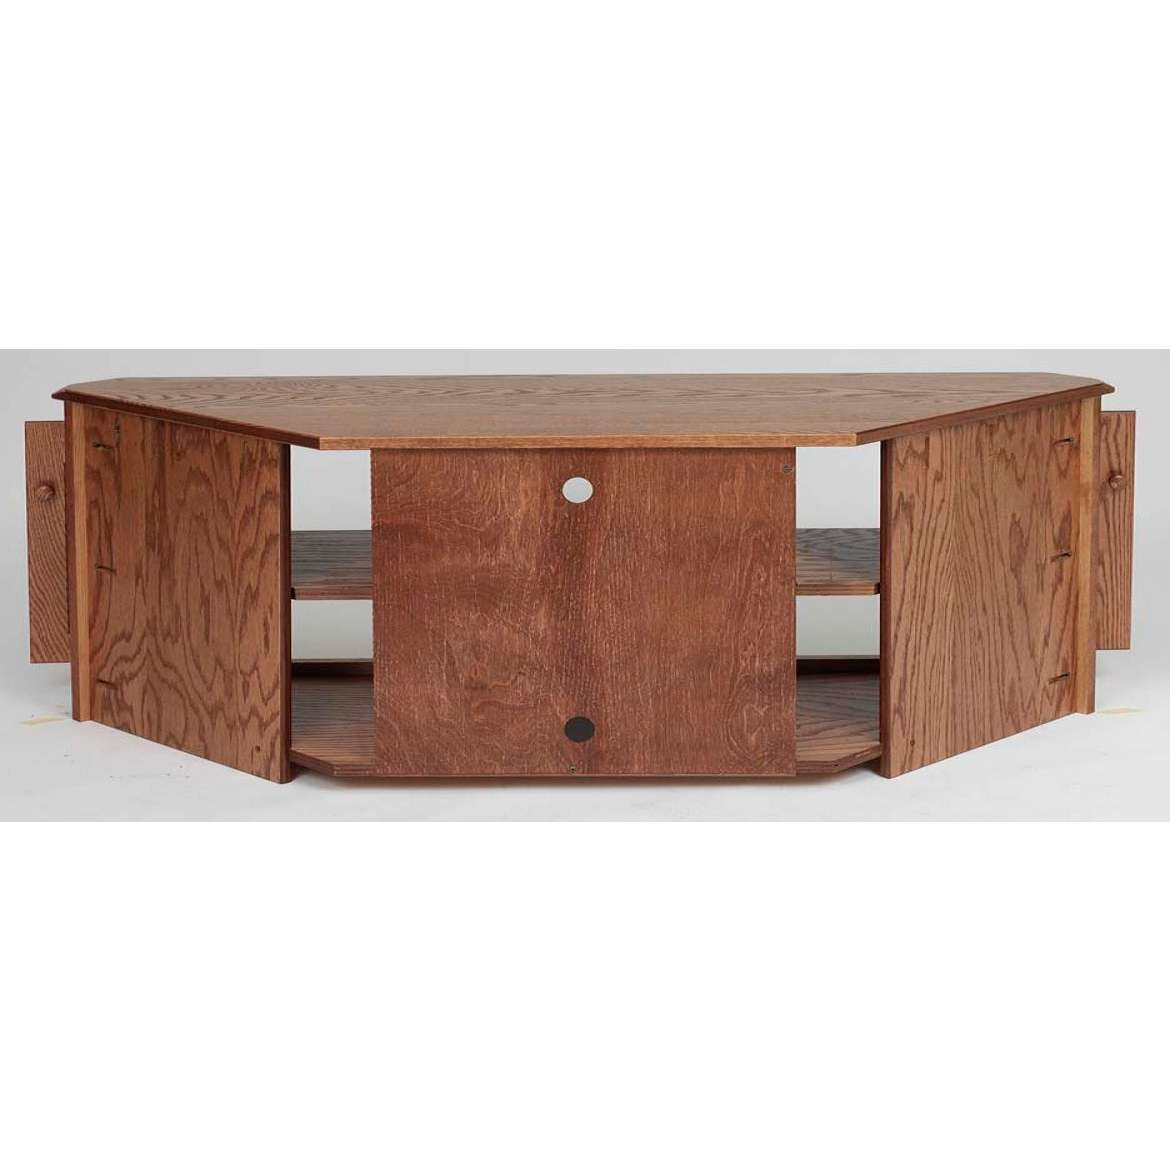 Tv : Solid Oak Country Style Corner Tv Stand Cabinet 64 Amazing Intended For French Country Tv Cabinets (View 16 of 20)